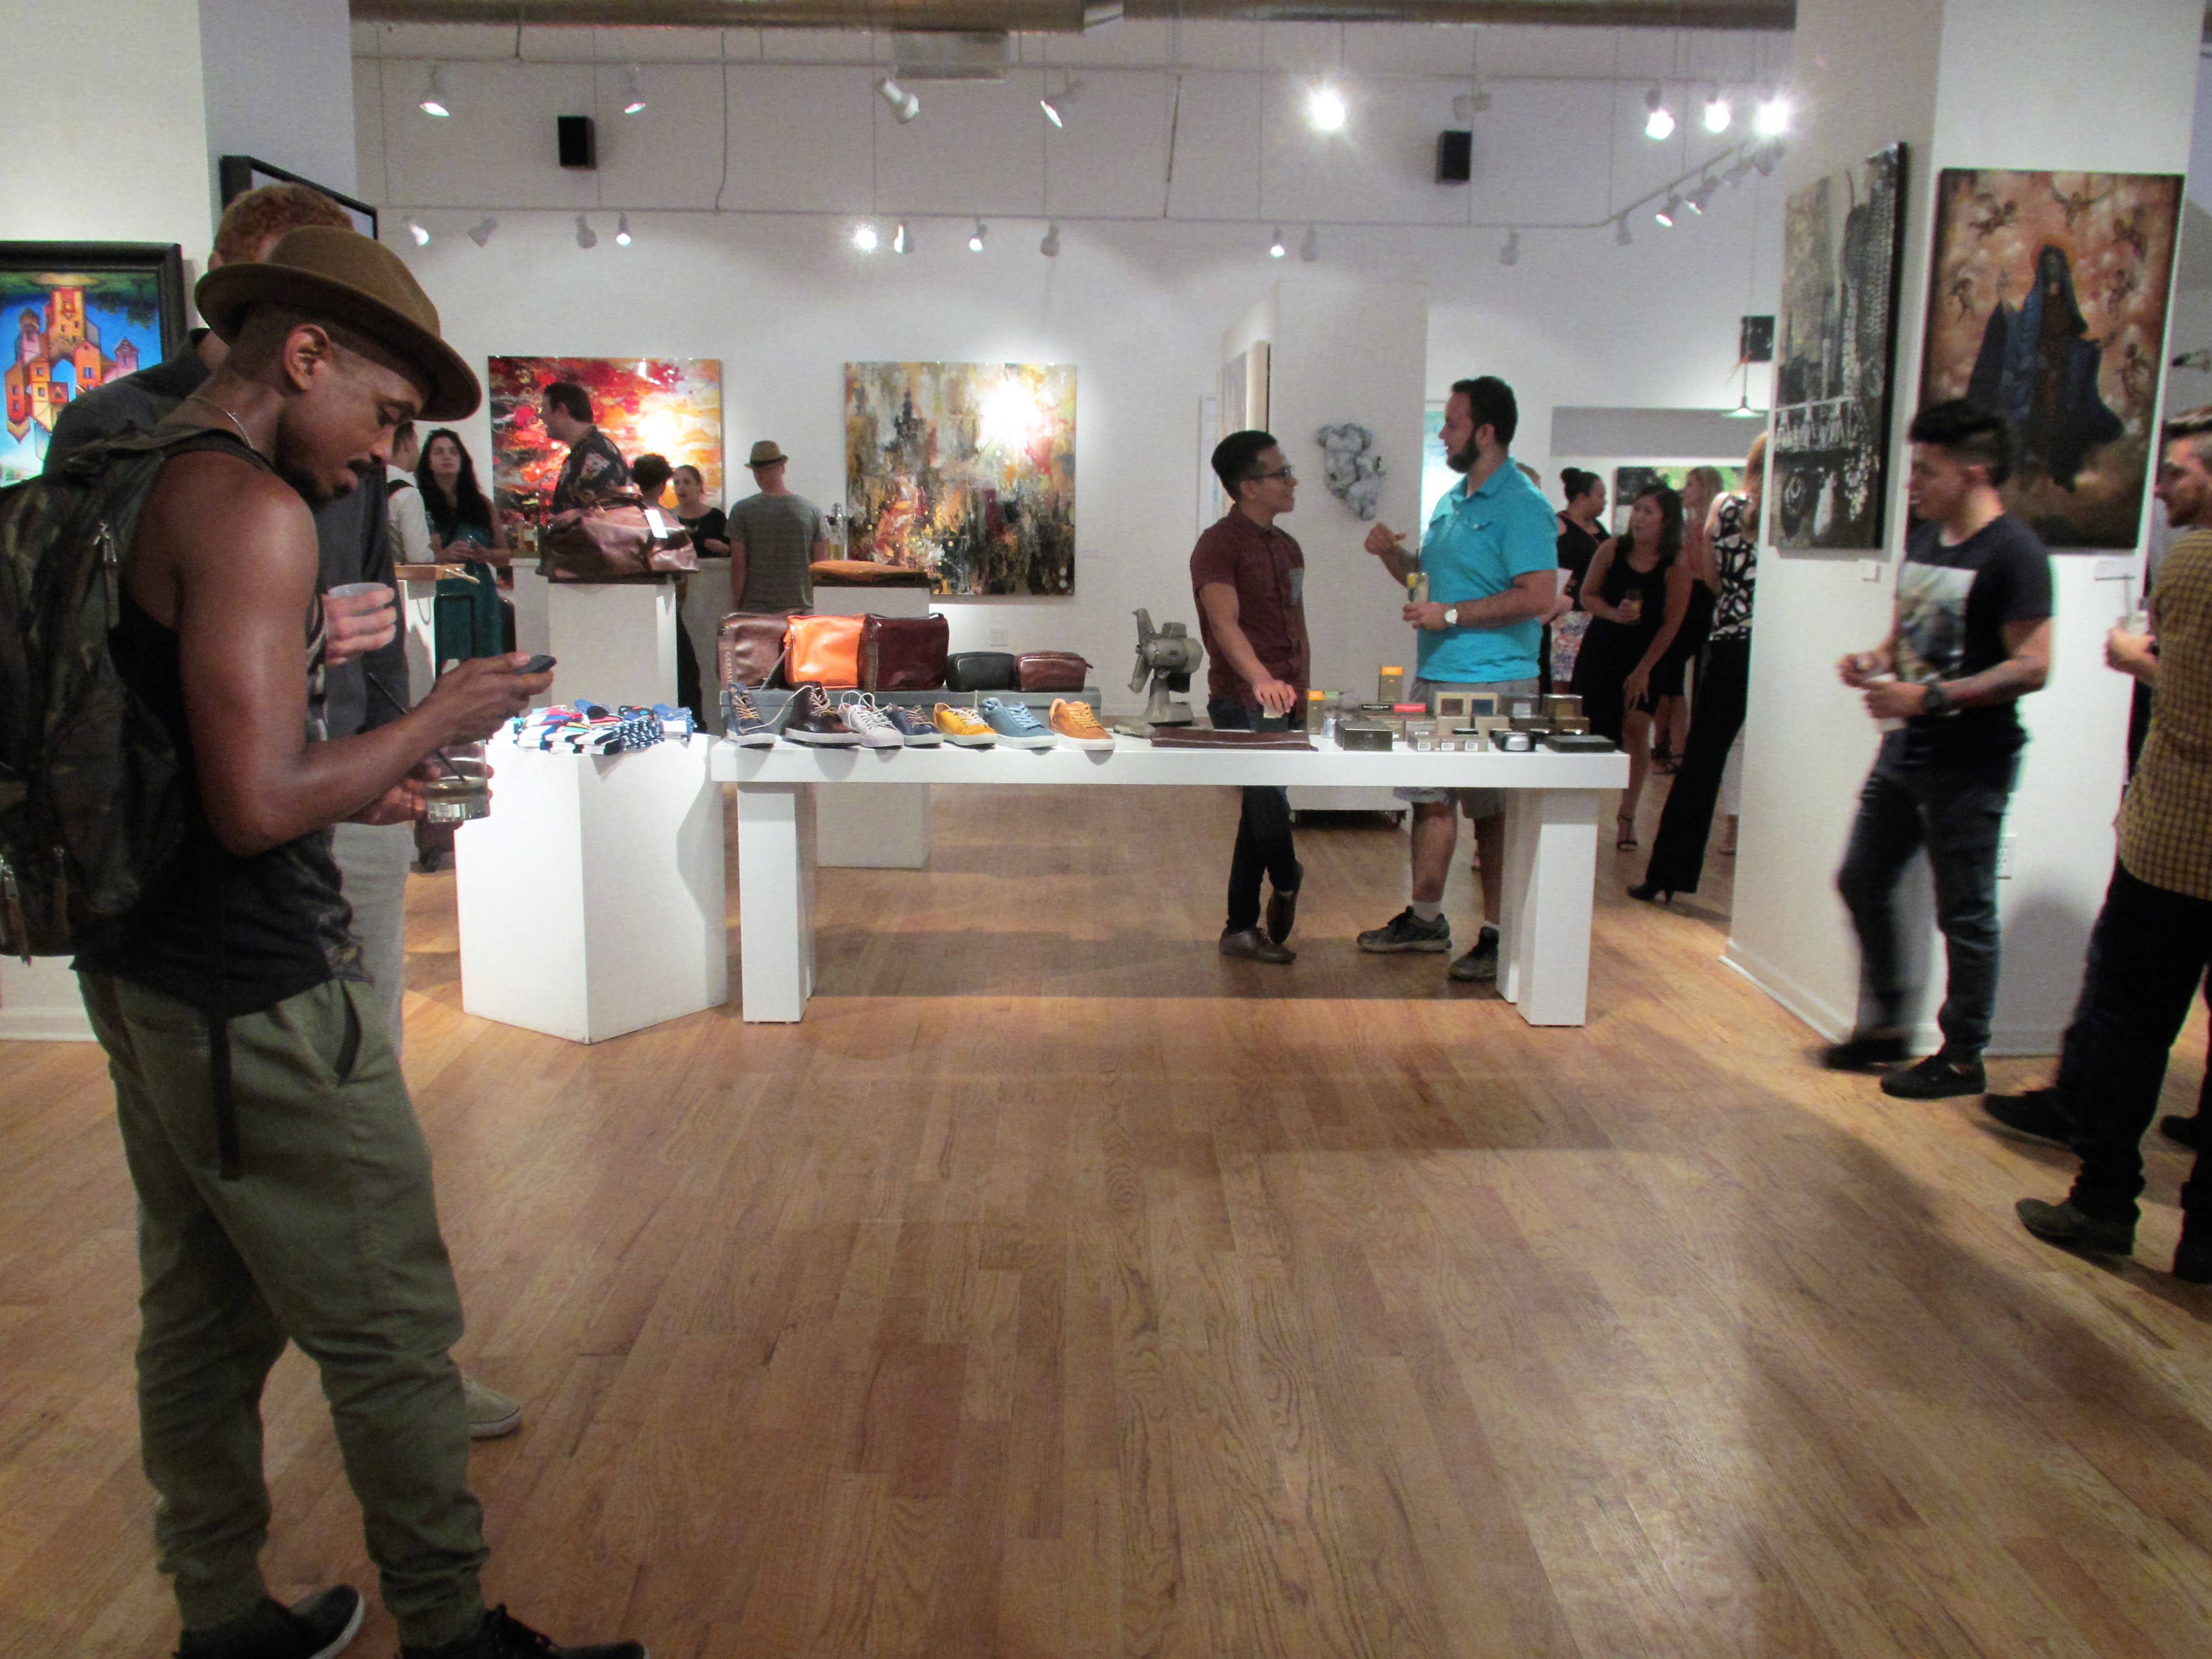 Photo #8 Full Venue at Jackson Junge Gallery